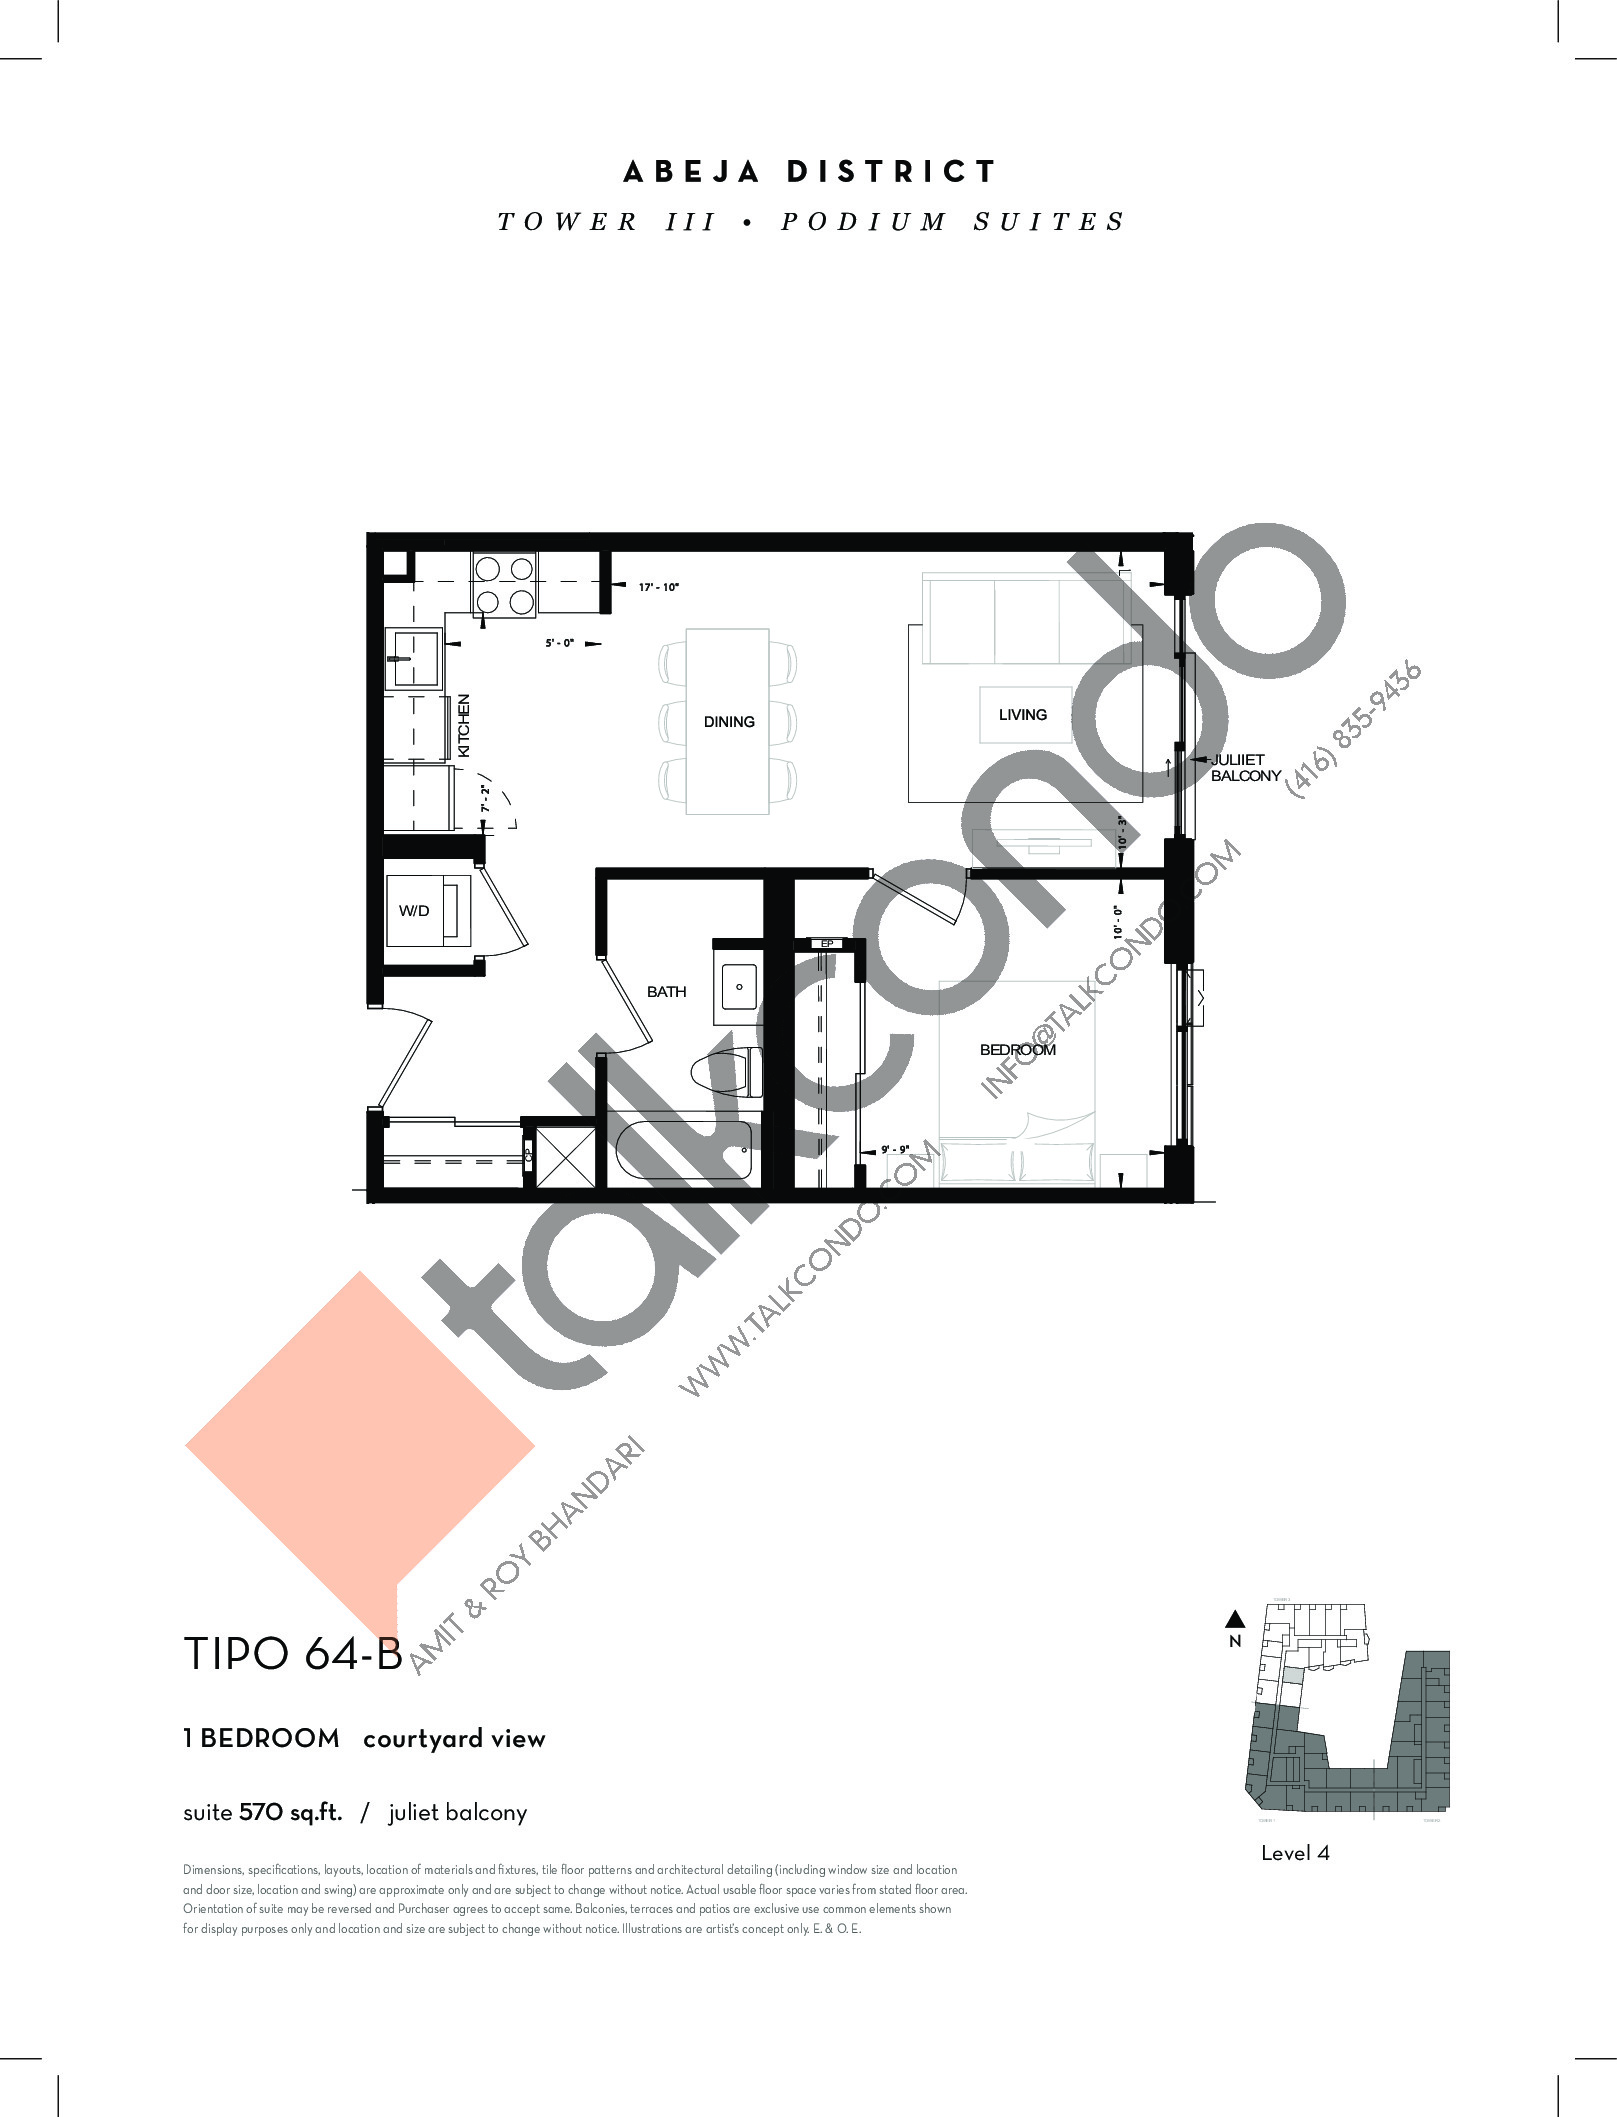 TIPO 64-B Floor Plan at Abeja District Condos Tower 3 - 570 sq.ft